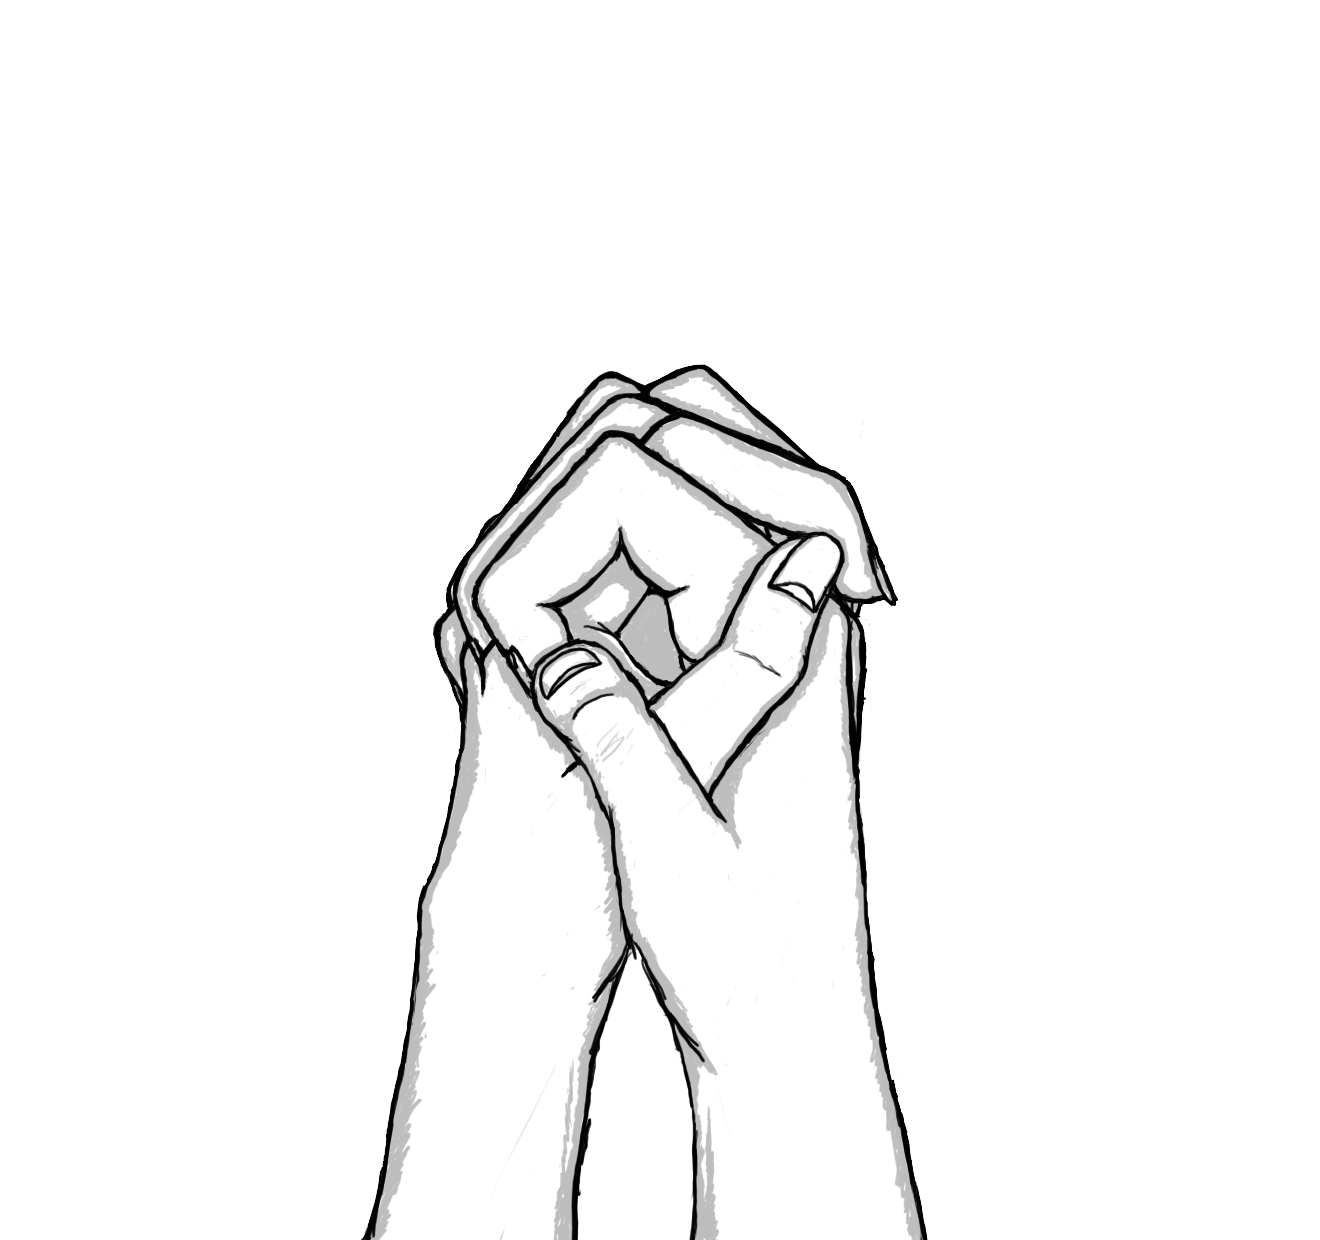 Free People Holding Hand, Download Free Clip Art, Free Clip Art on.